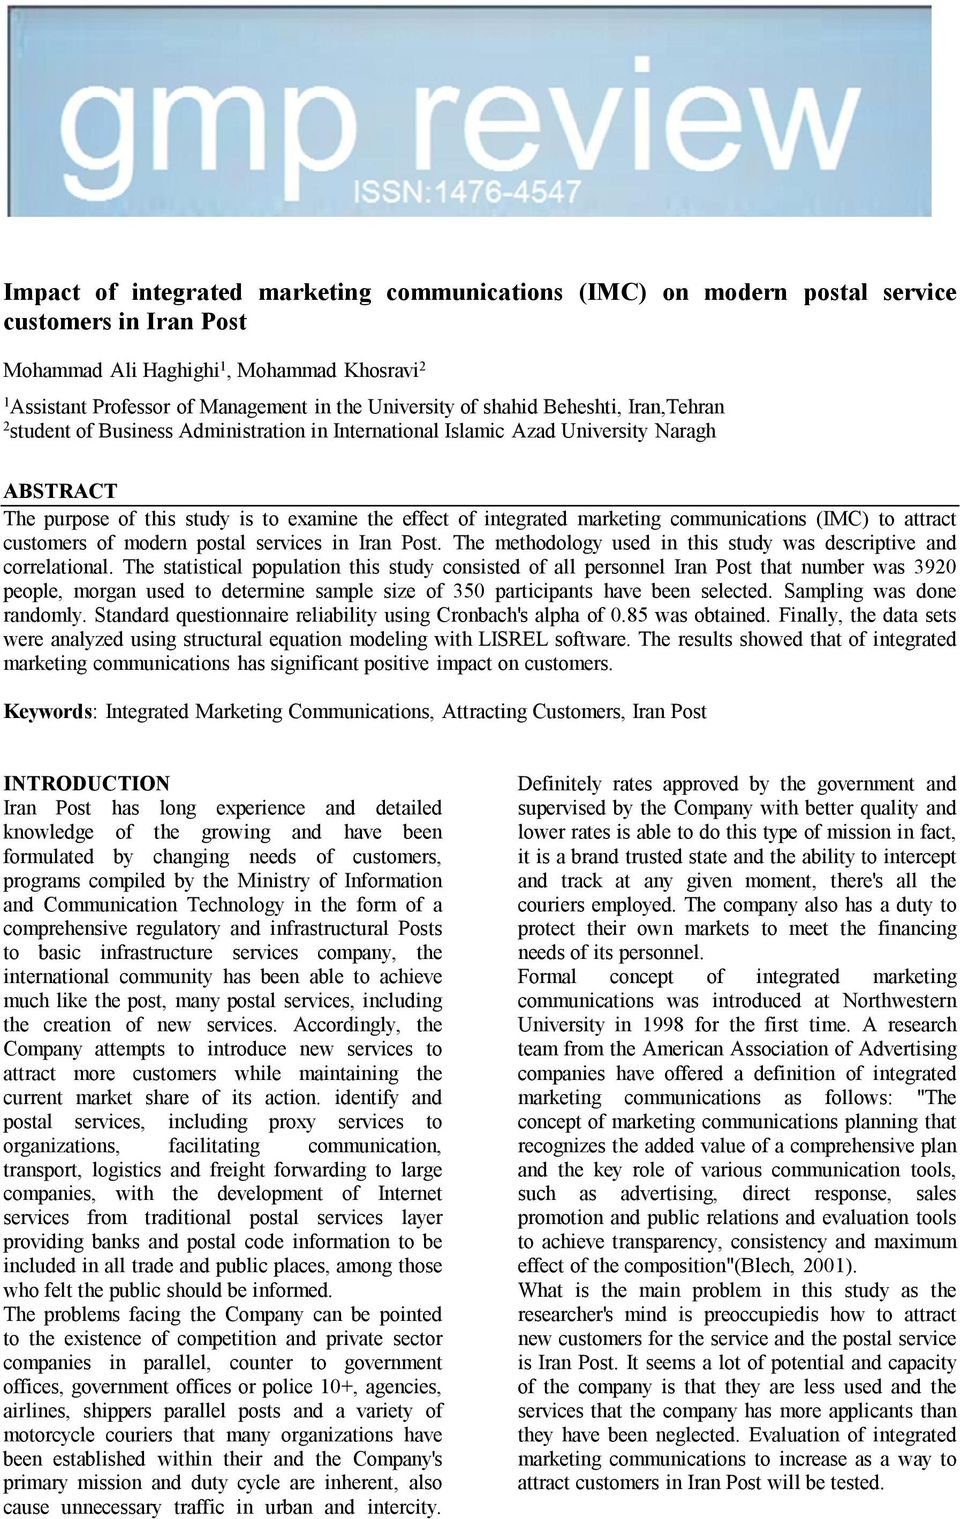 marketing communications (IMC) to attract customers of modern postal services in Iran Post. The methodology used in this study was descriptive and correlational.